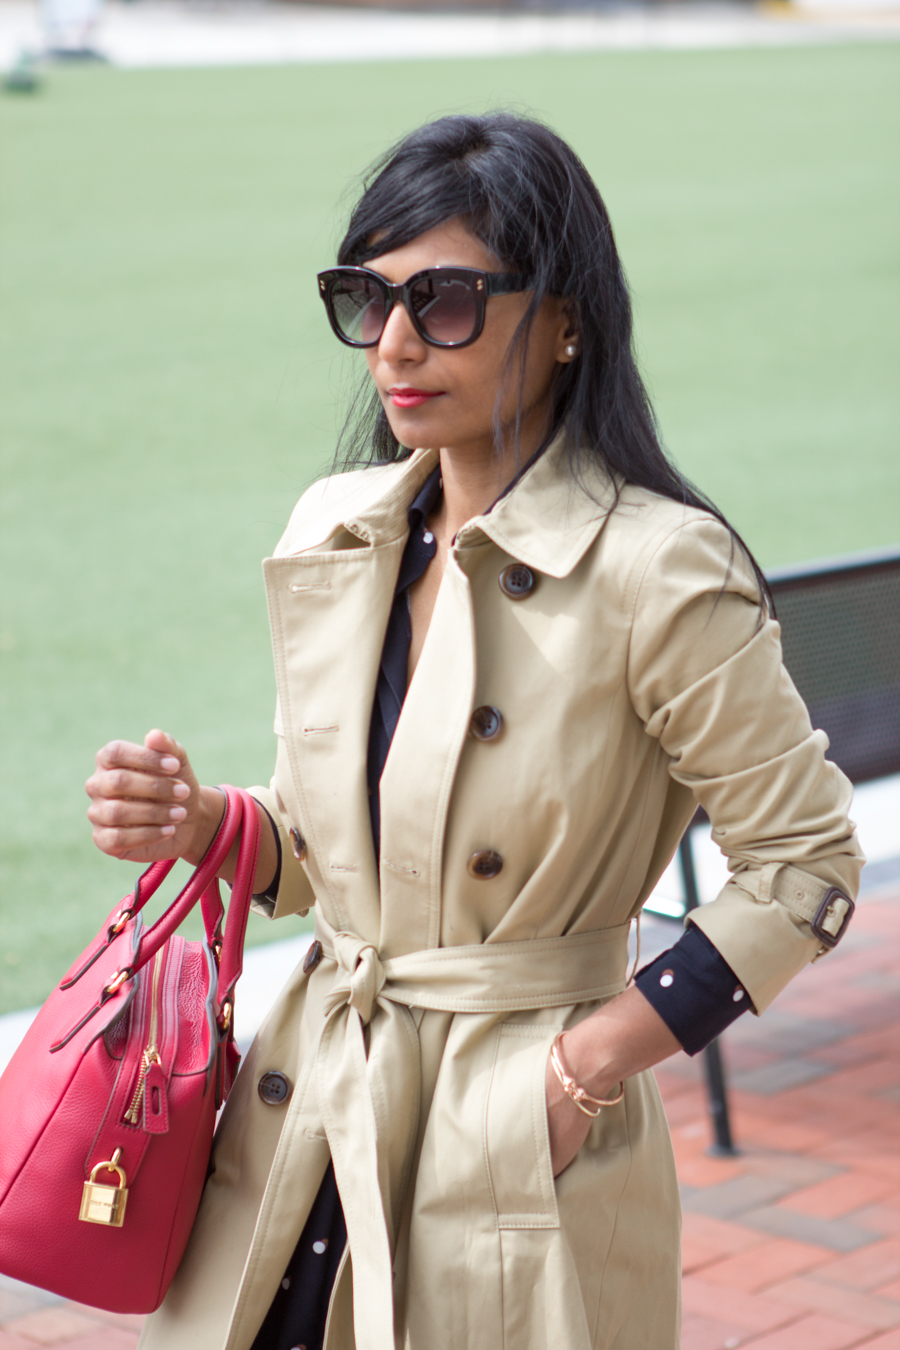 rainy day style, work style, trench-coat, trench, stone trench, perfect trench, classic trench, classic coat, jcrew style, j.crew, preppy, chic coat, mommy style, personal style, style blog